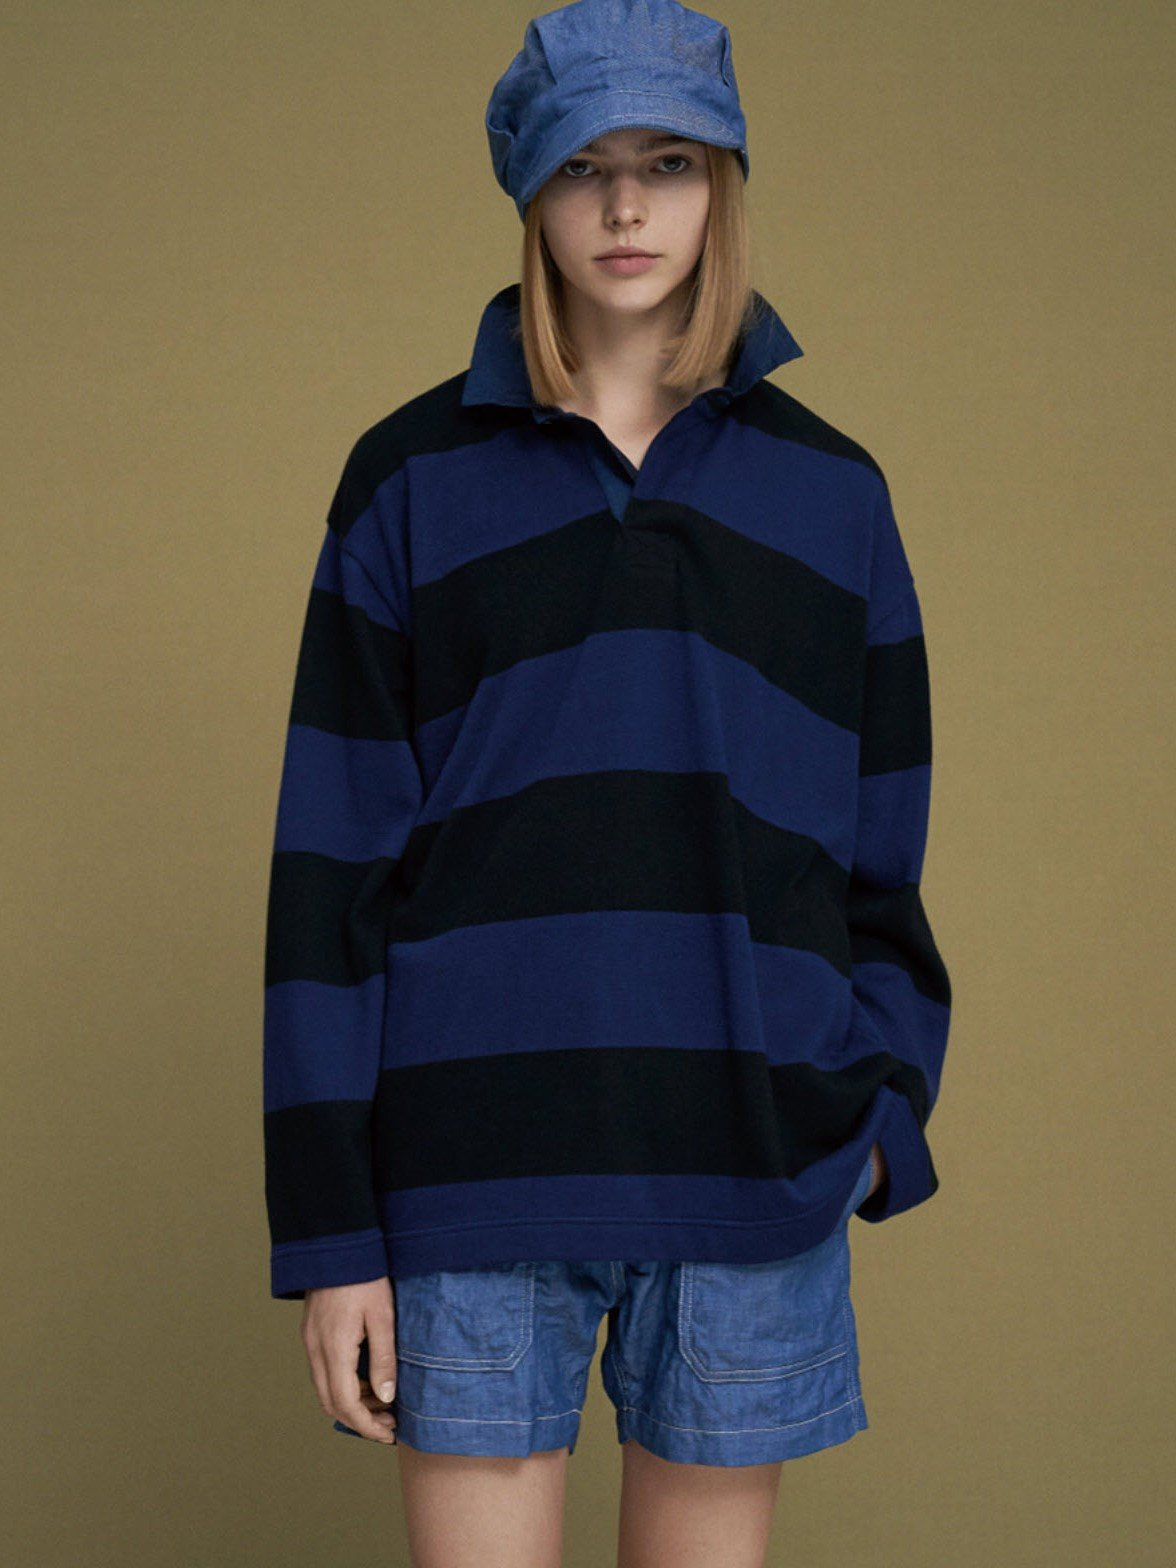 Namu Shop - ts(s) Border Stripe Rugby Knit - Extra Soft Twistless Cotton